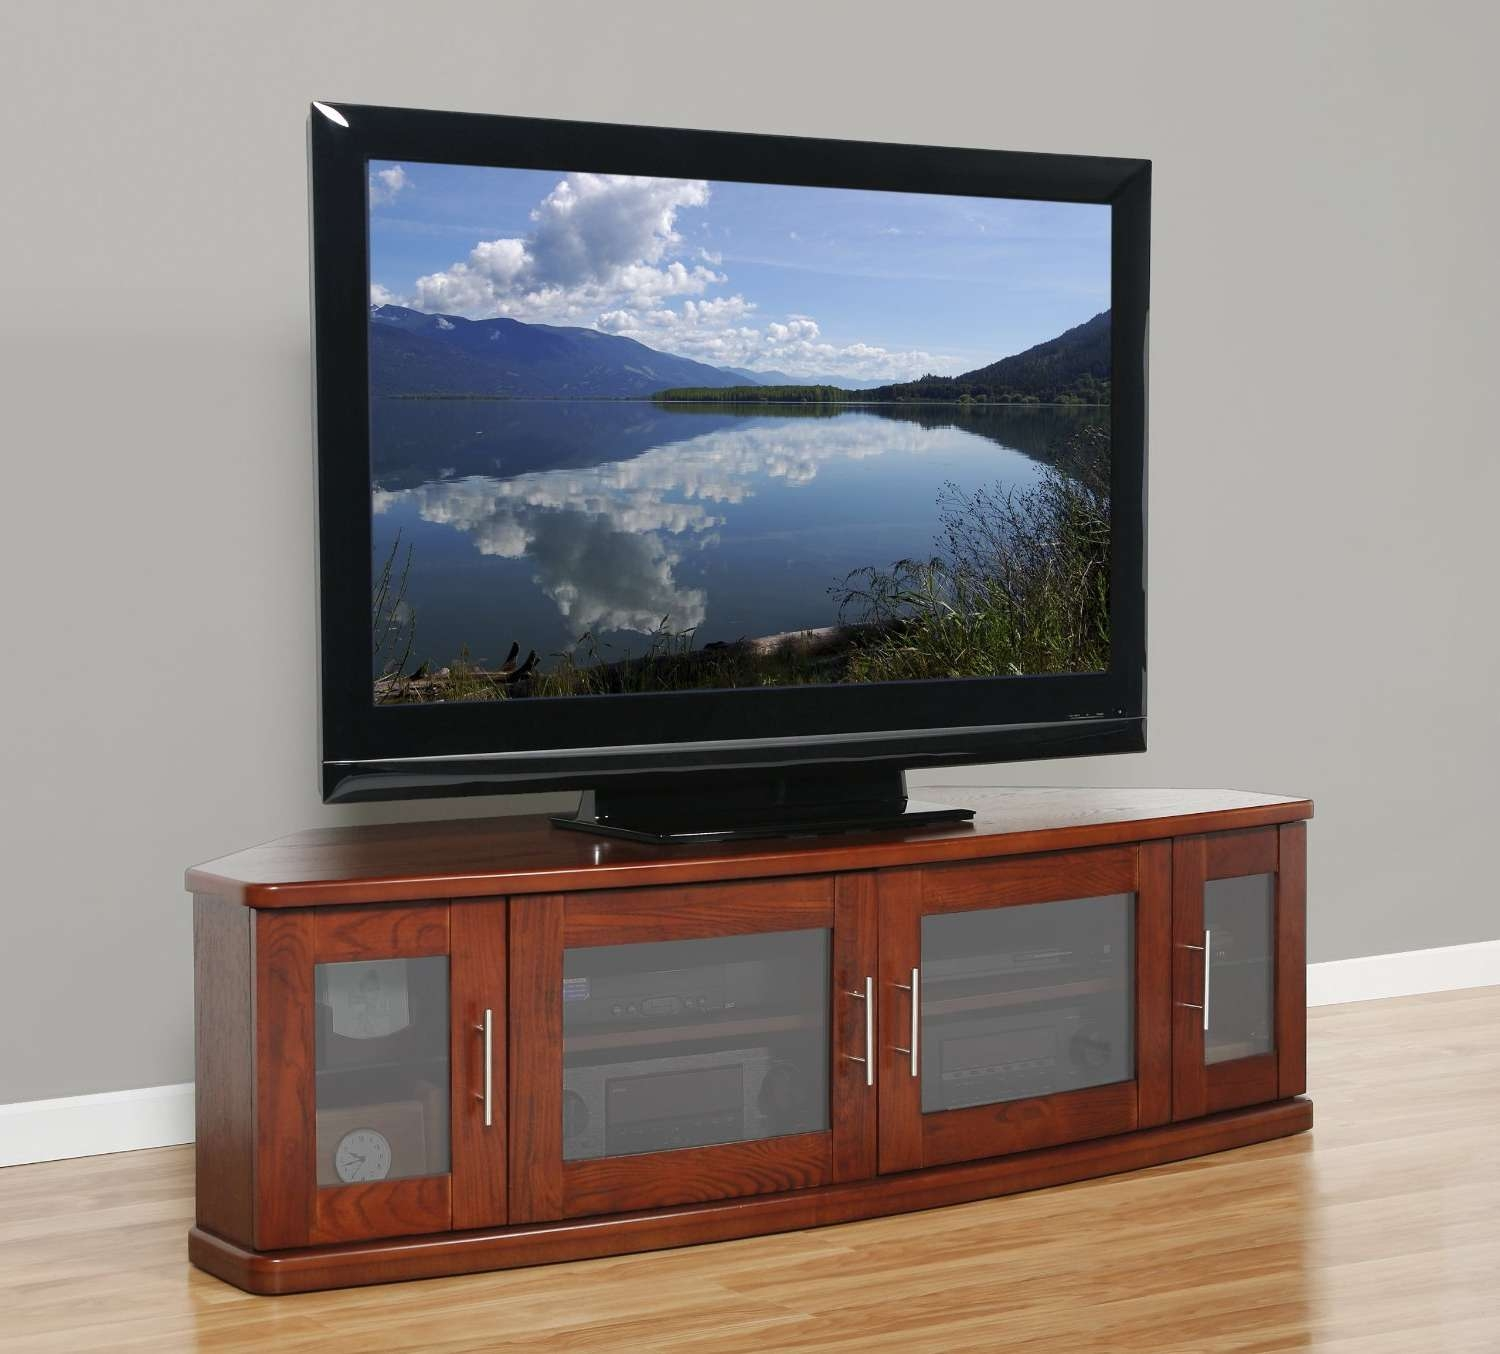 Curved Brown Figured Cherry Wood Low Cabinet For Tv Stand With 4 With Regard To Wood And Glass Tv Stands For Flat Screens (View 15 of 20)